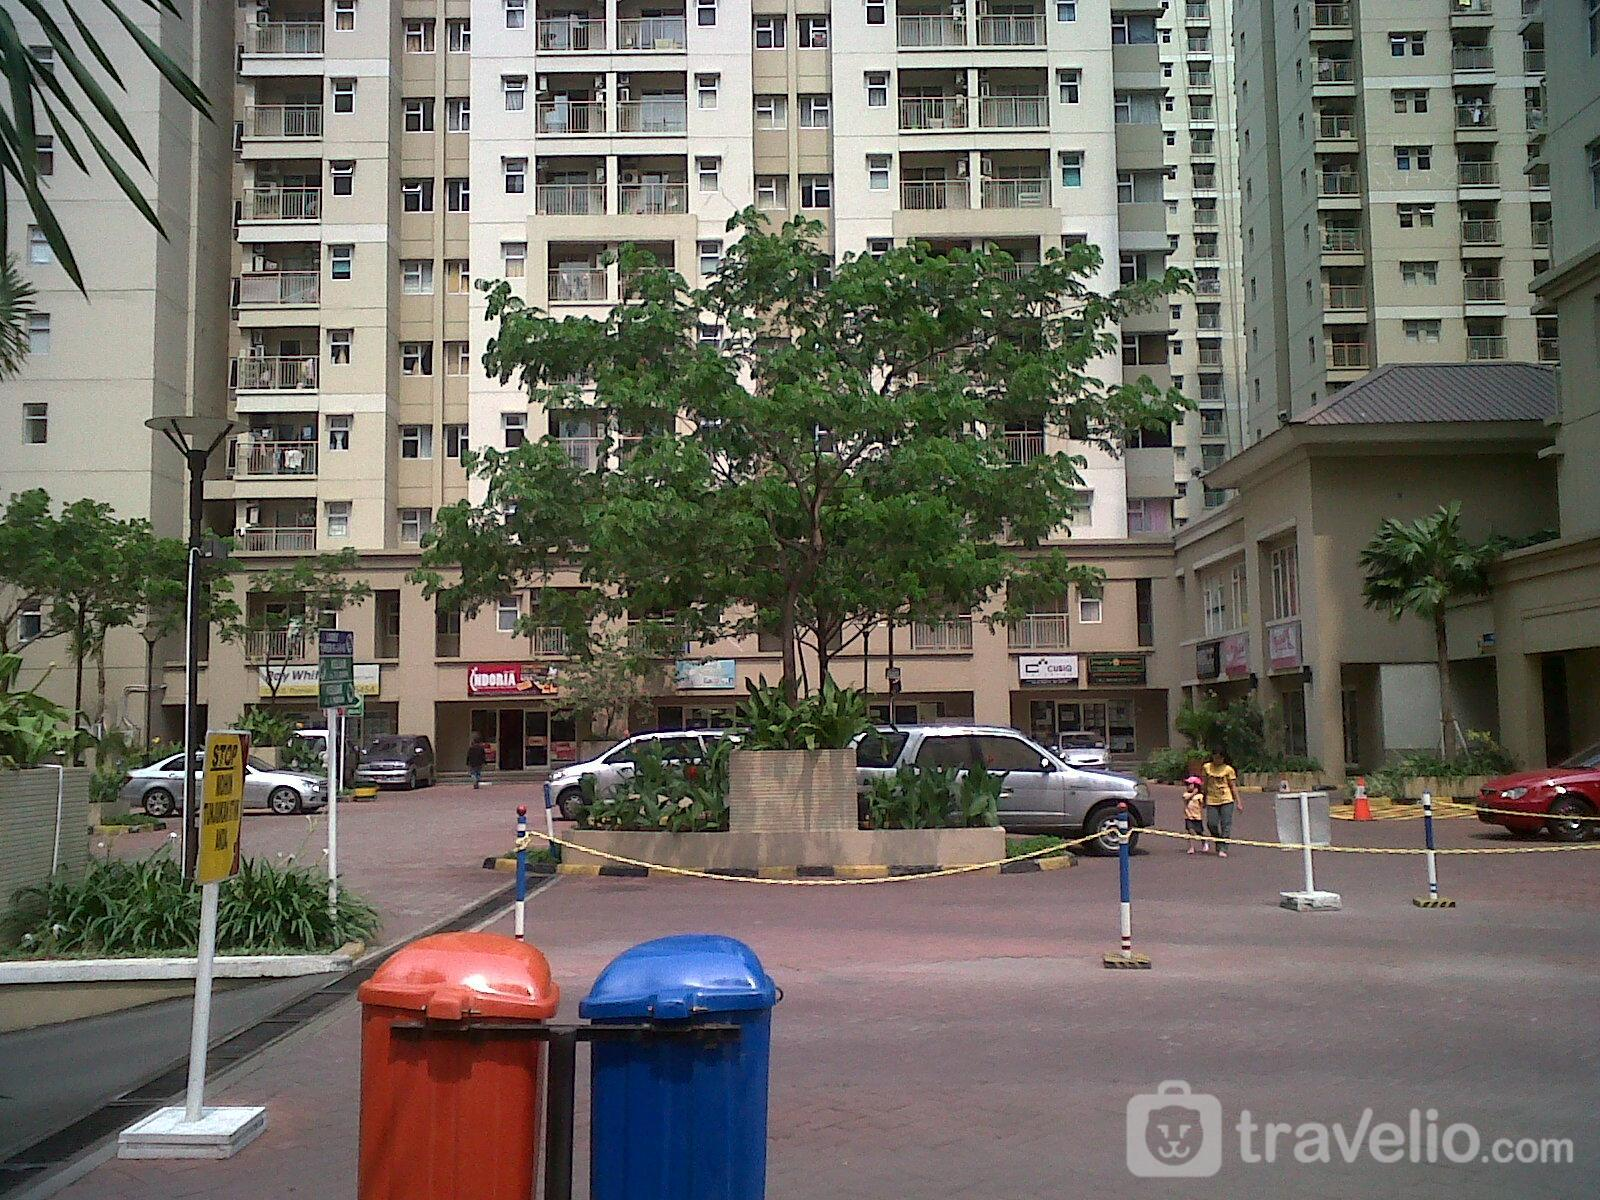 1 Bedroom Apartemen Mediterania Garden Residence 2 Apartment Monthly